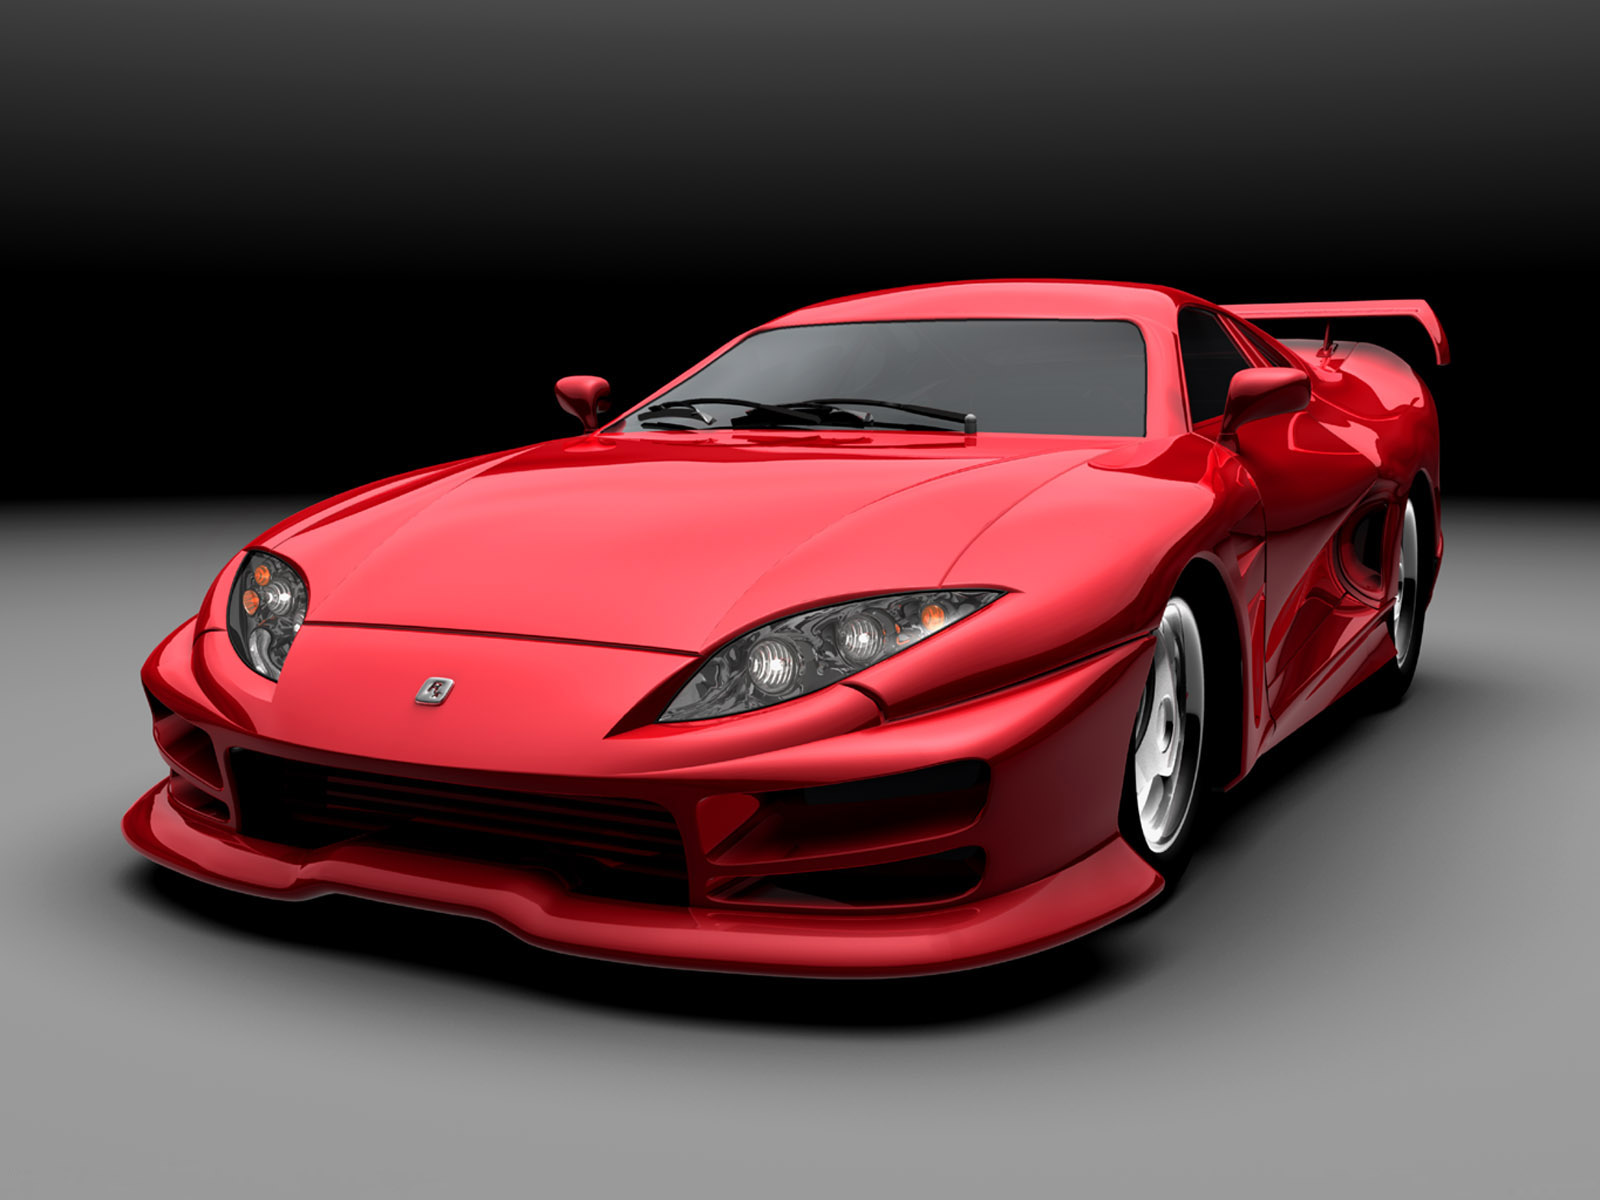 Sports Car   Wallpapers Pictures Pics Images Photos Desktop 1600x1200